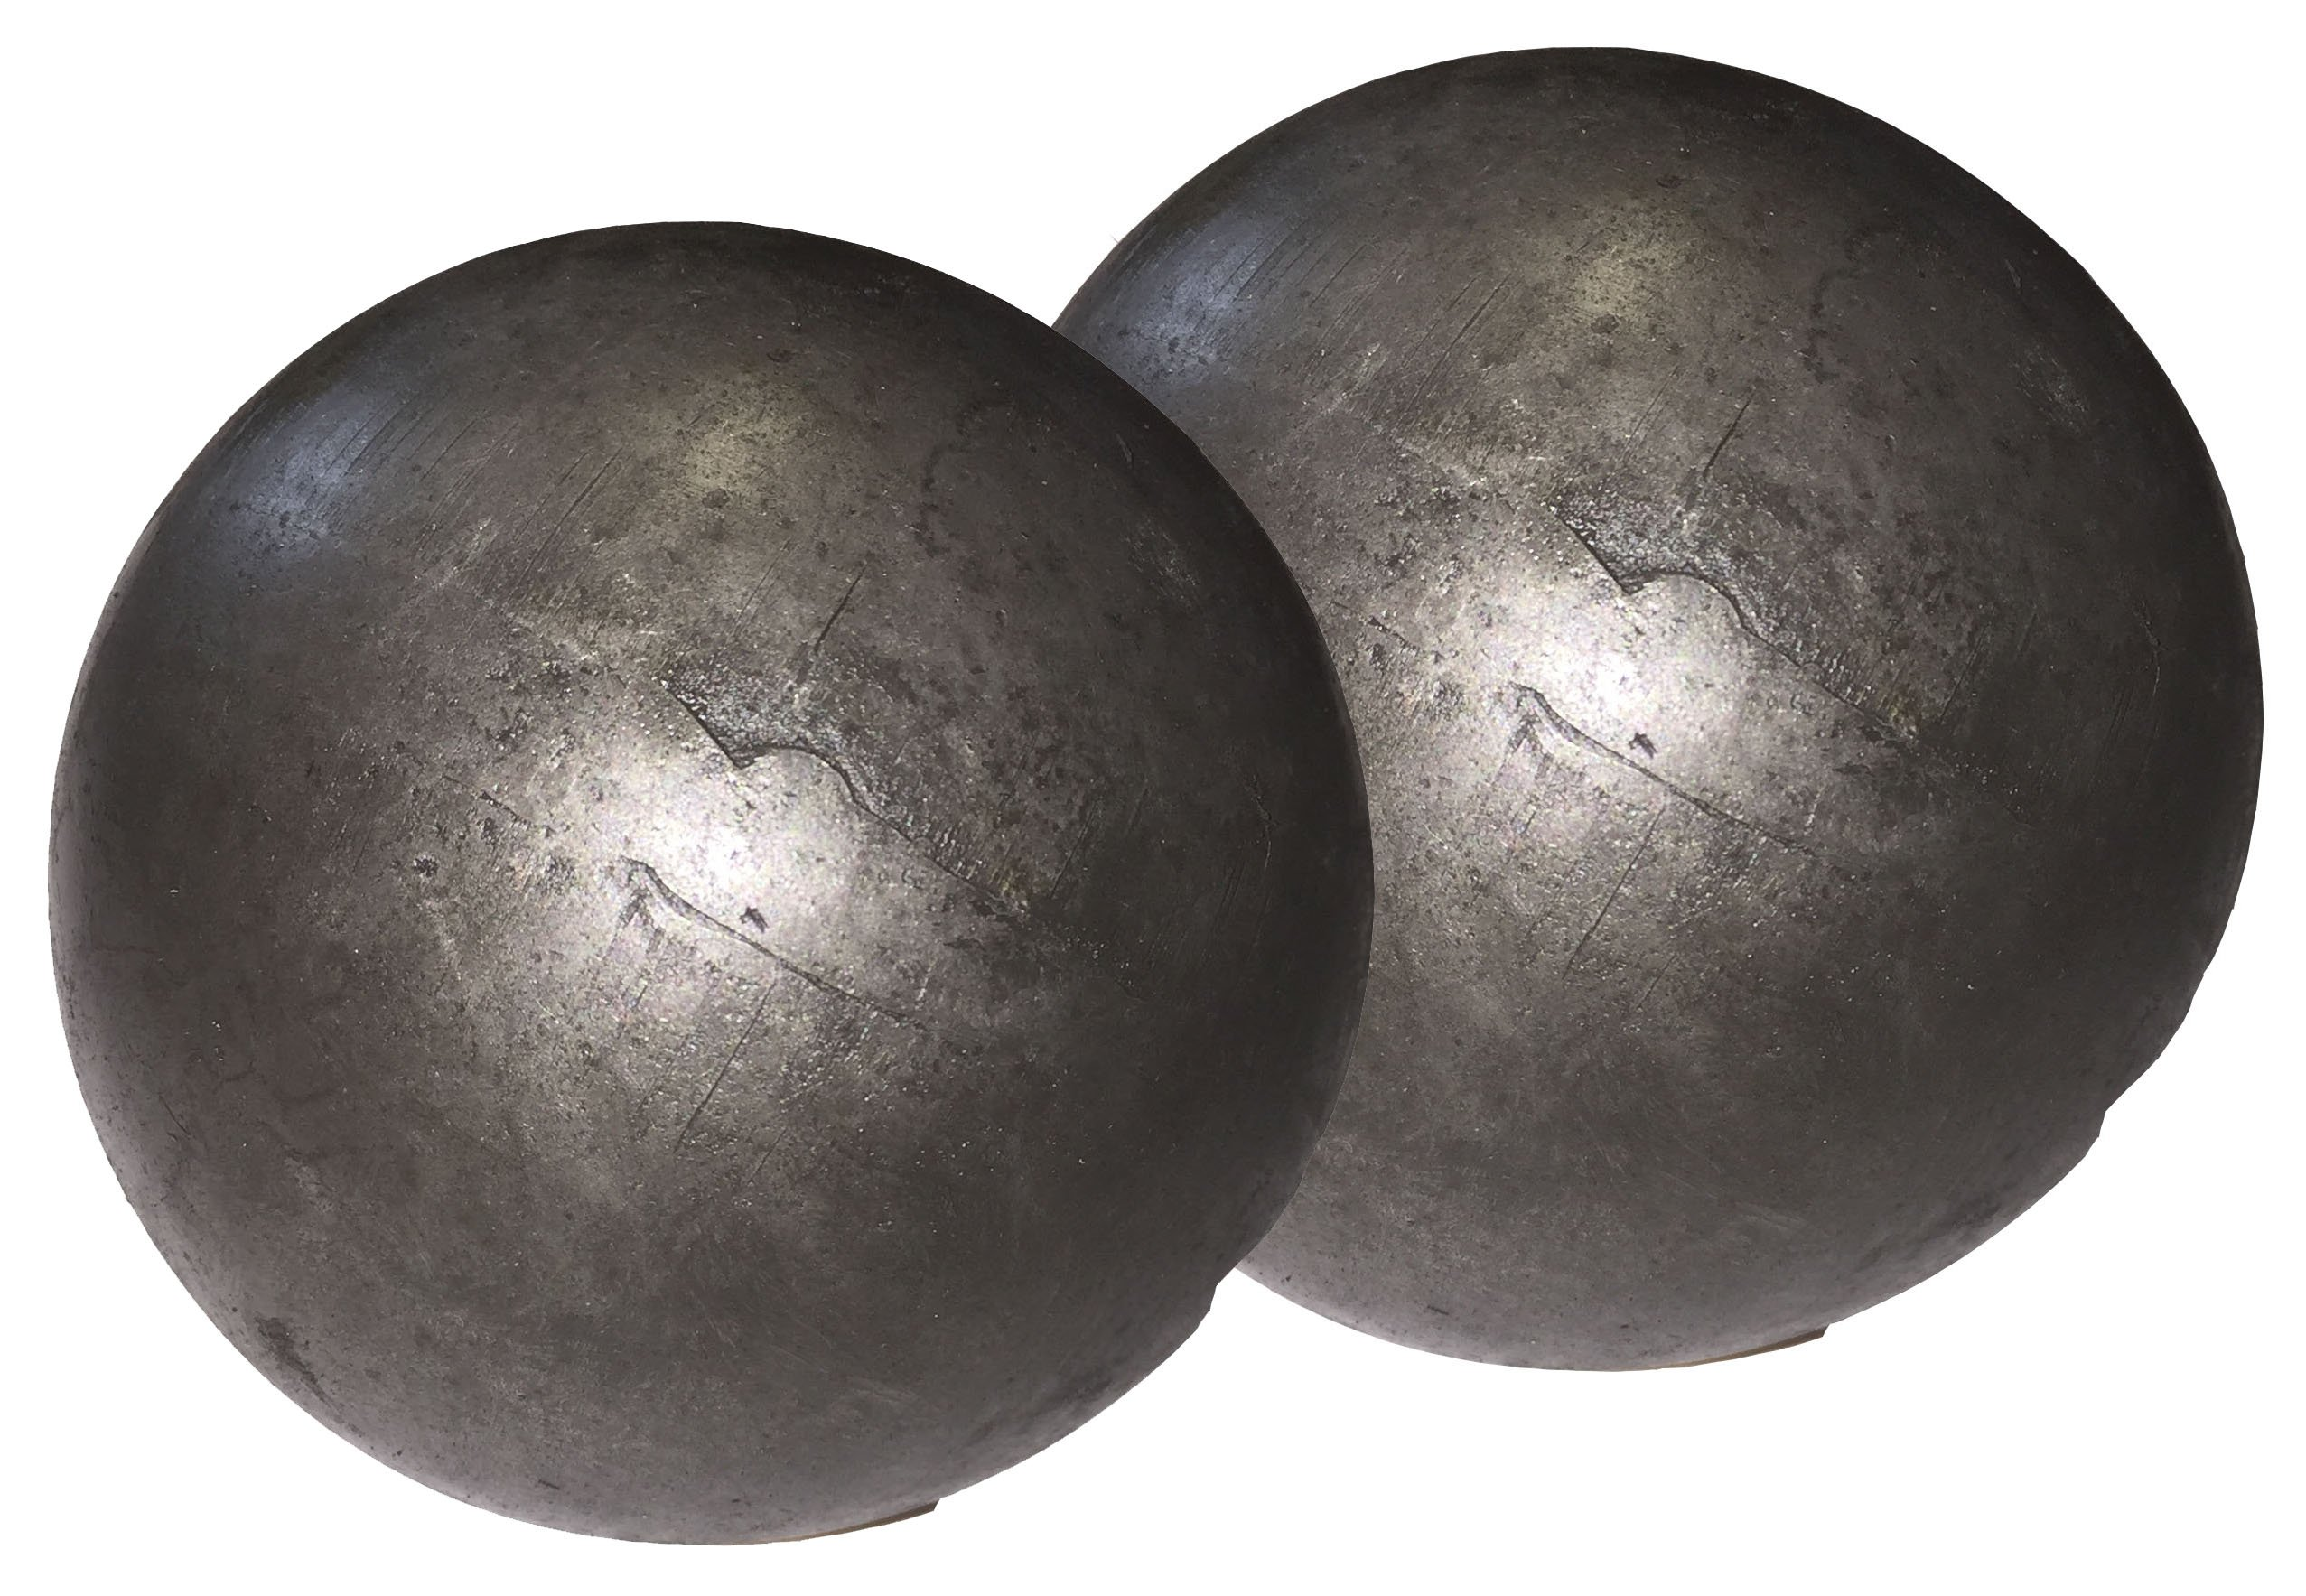 Hollow 3'' steel ball weldable DIY project component (2-pack) by WELDIY (Image #3)